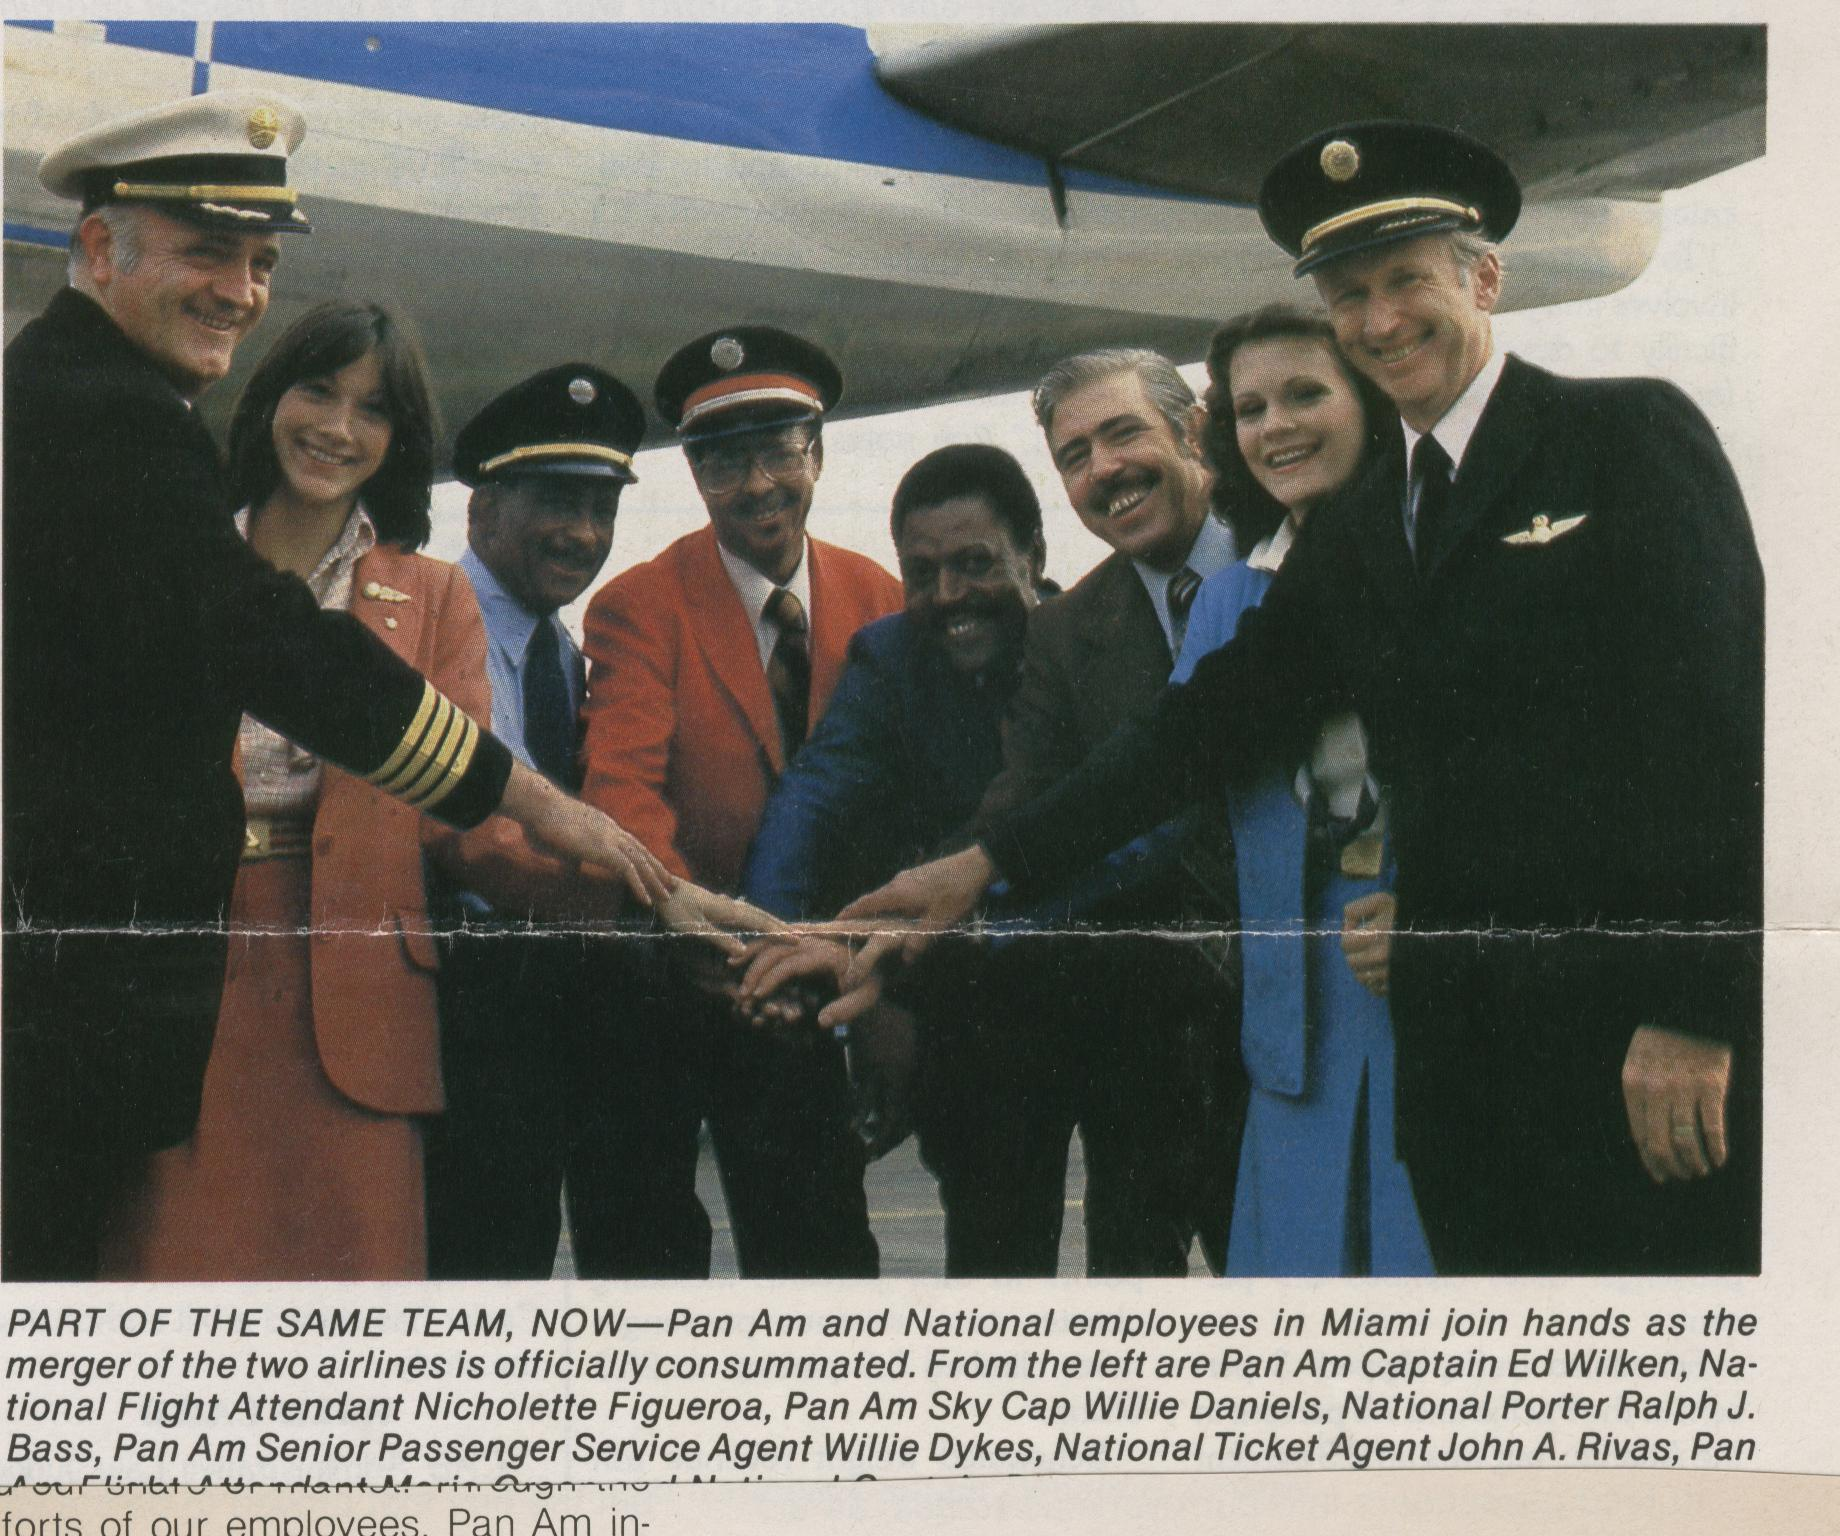 1980 Pan Am & National Airlines employees from various departments post by a 707 in the lead up to the Pan Am - National Merger. The merger was signed in January of 1980.